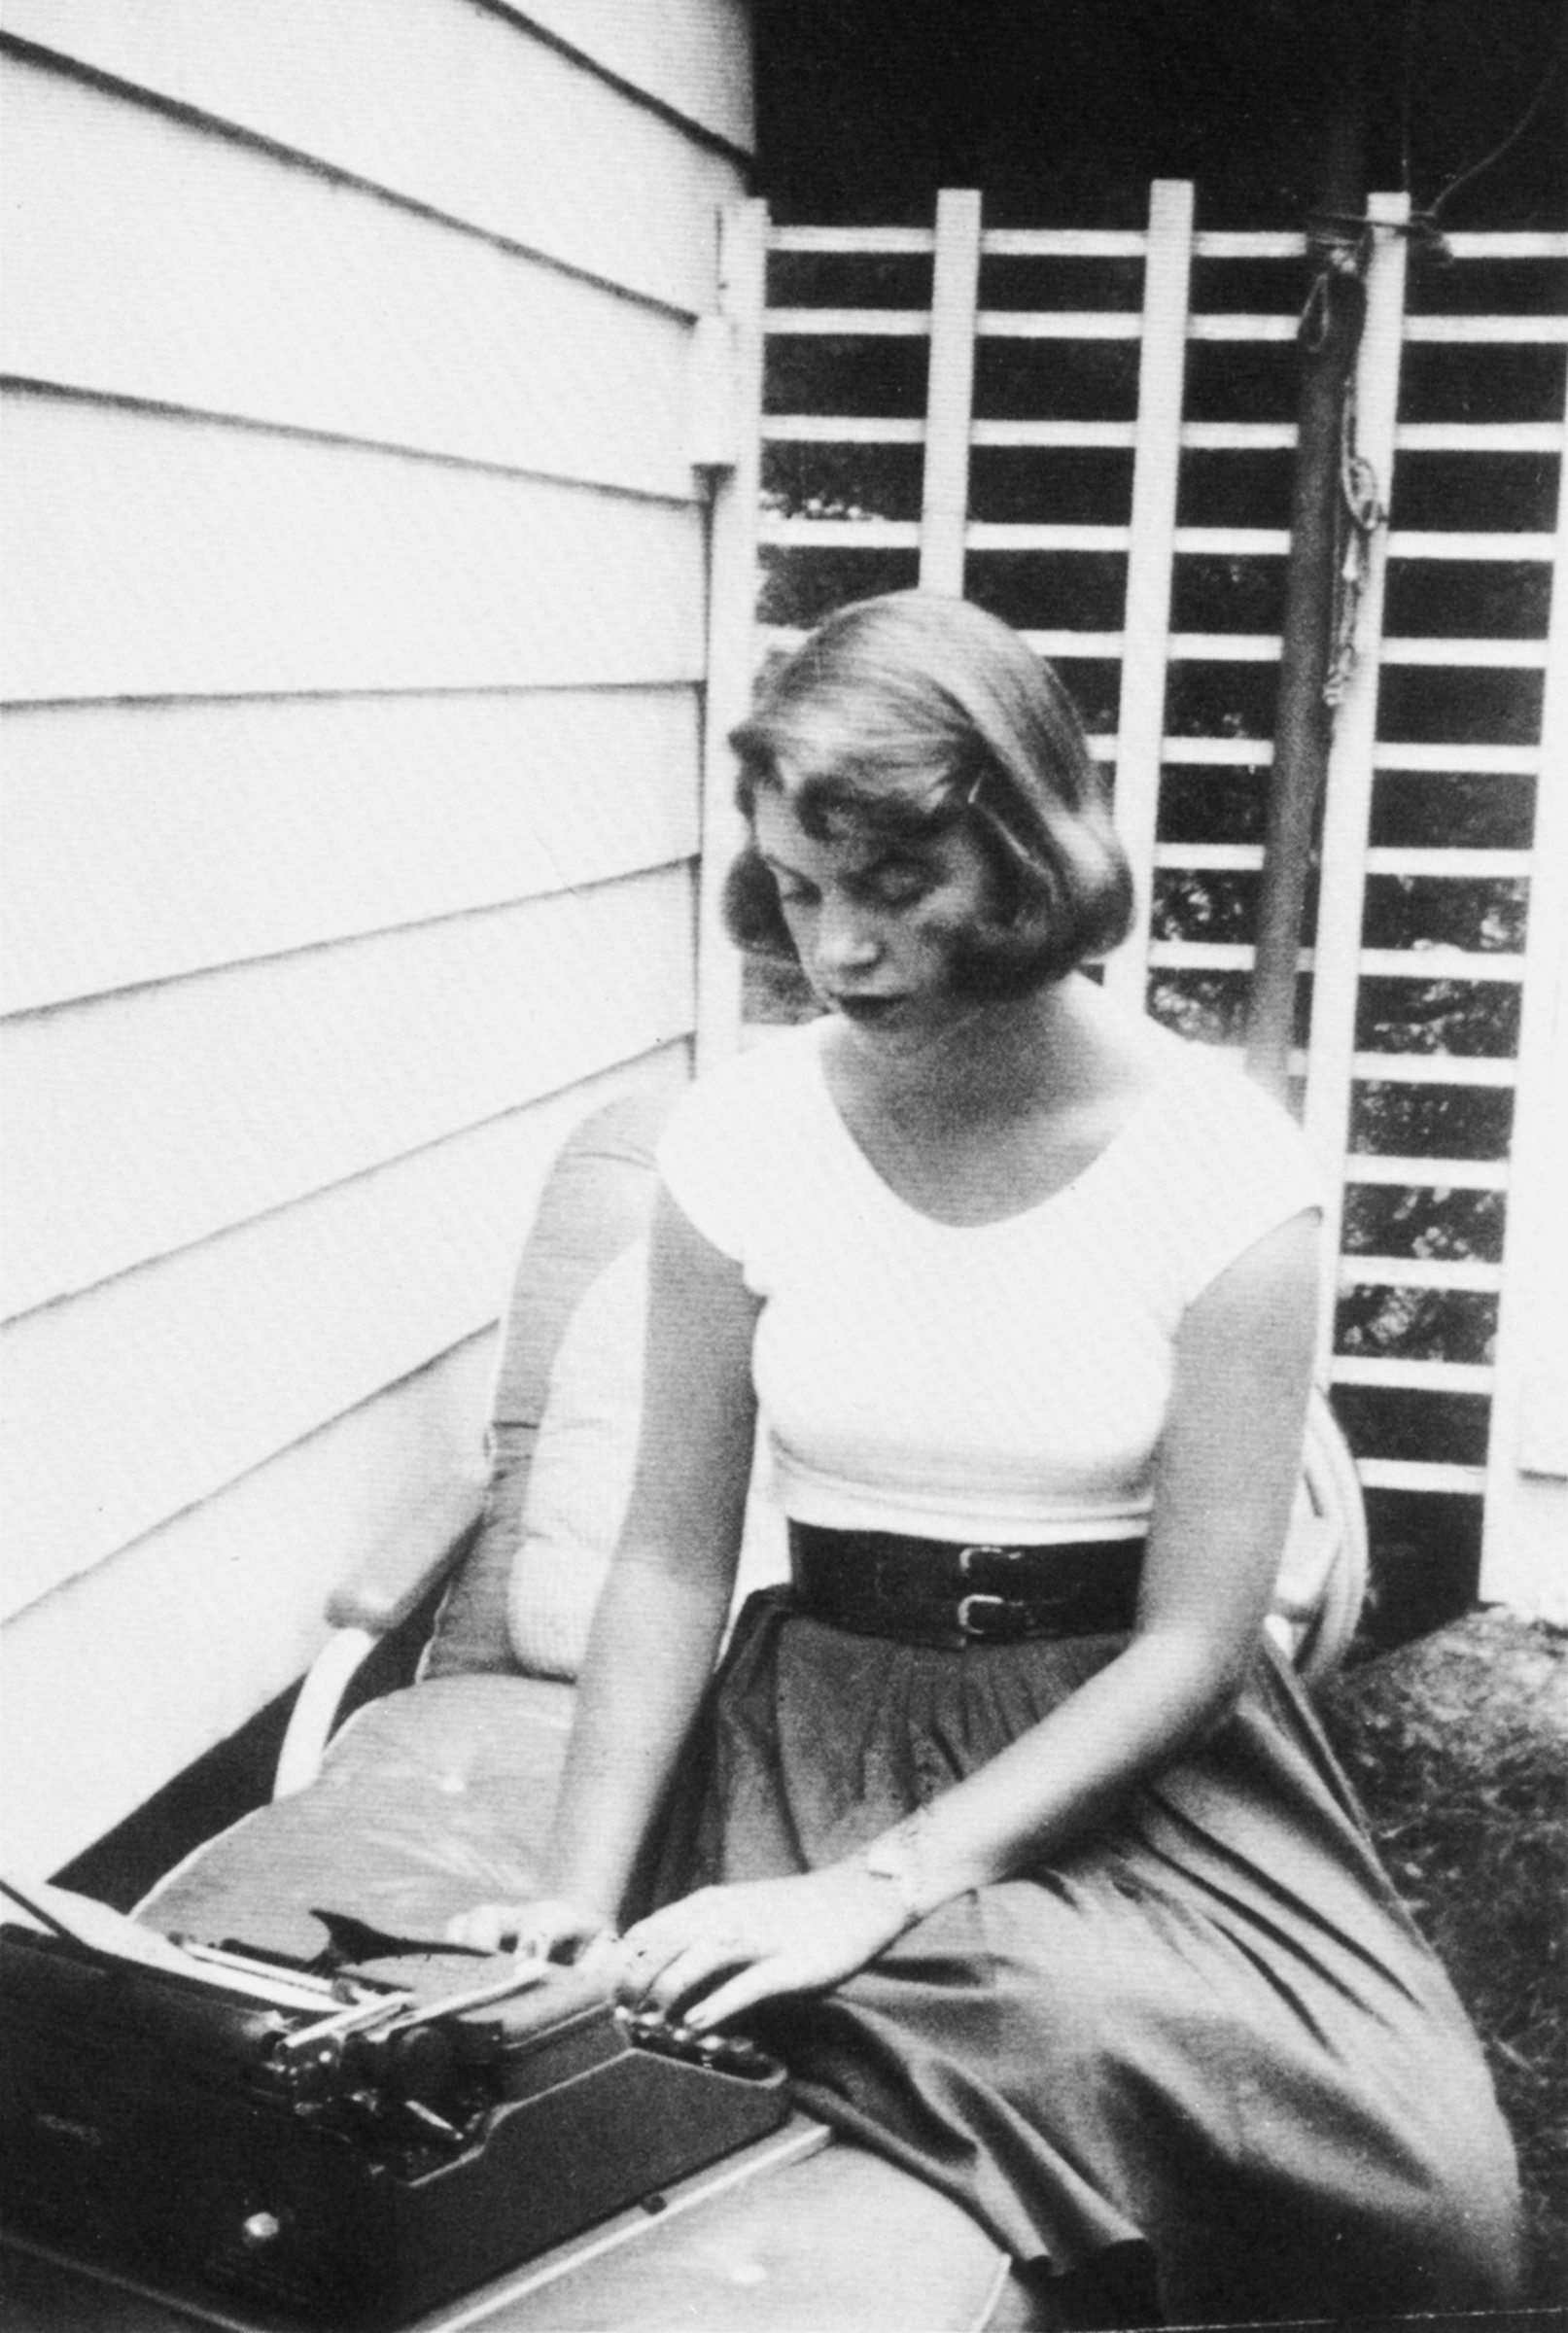 Plath typing in the backyard, Wellesley, Massachusetts, 1954